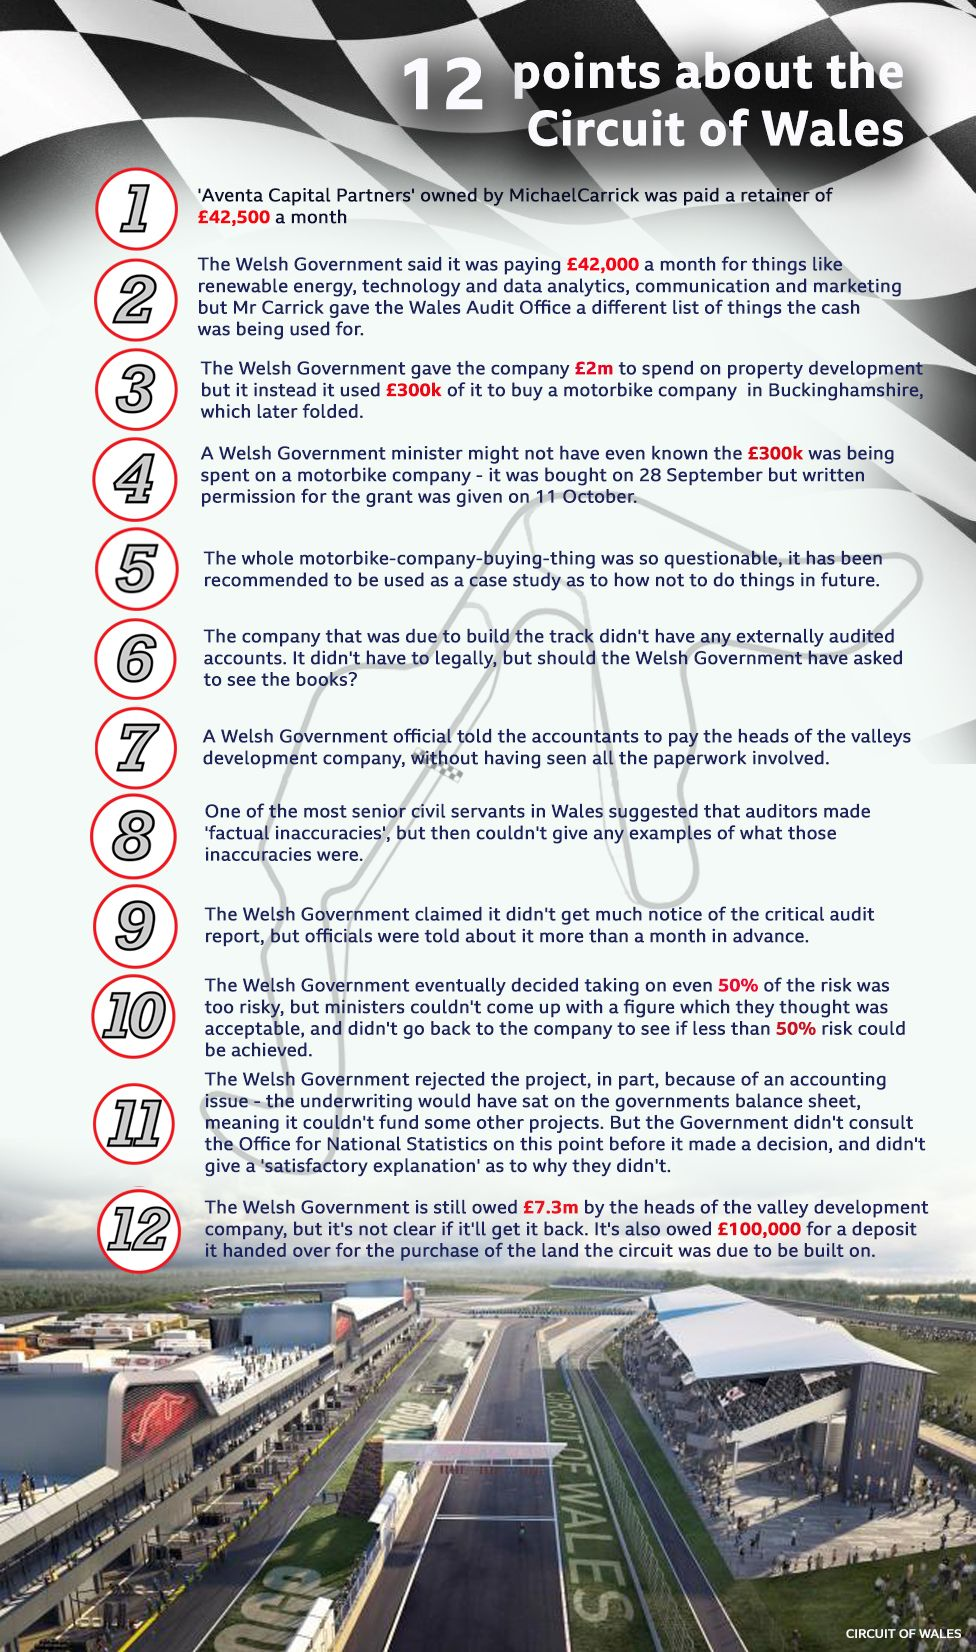 Circuit of Wales: 12 Key Points from the report - Graphic